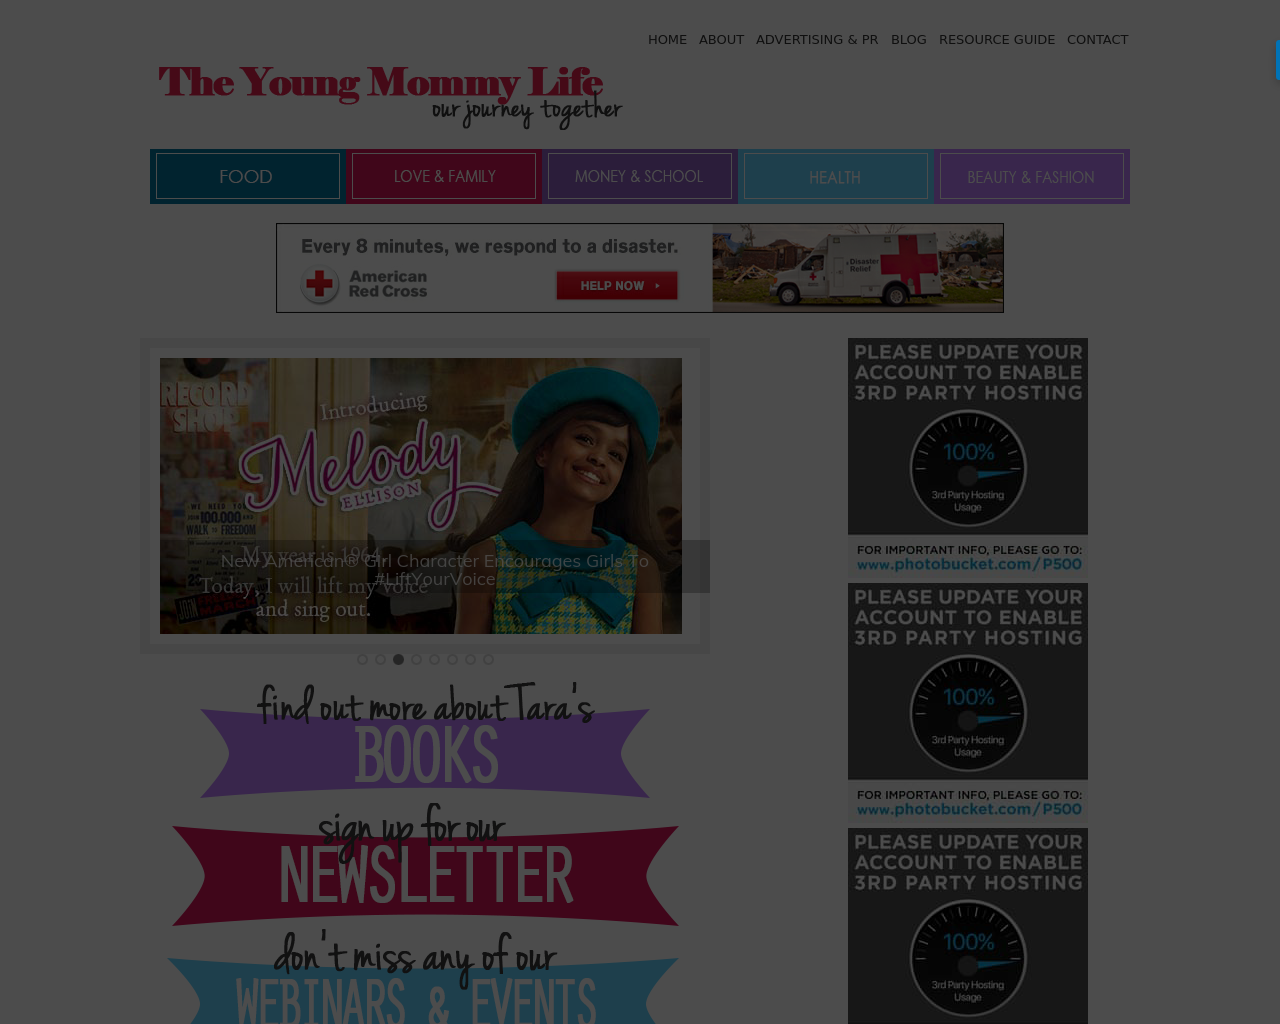 The-Young-Mommy-Life-Advertising-Reviews-Pricing